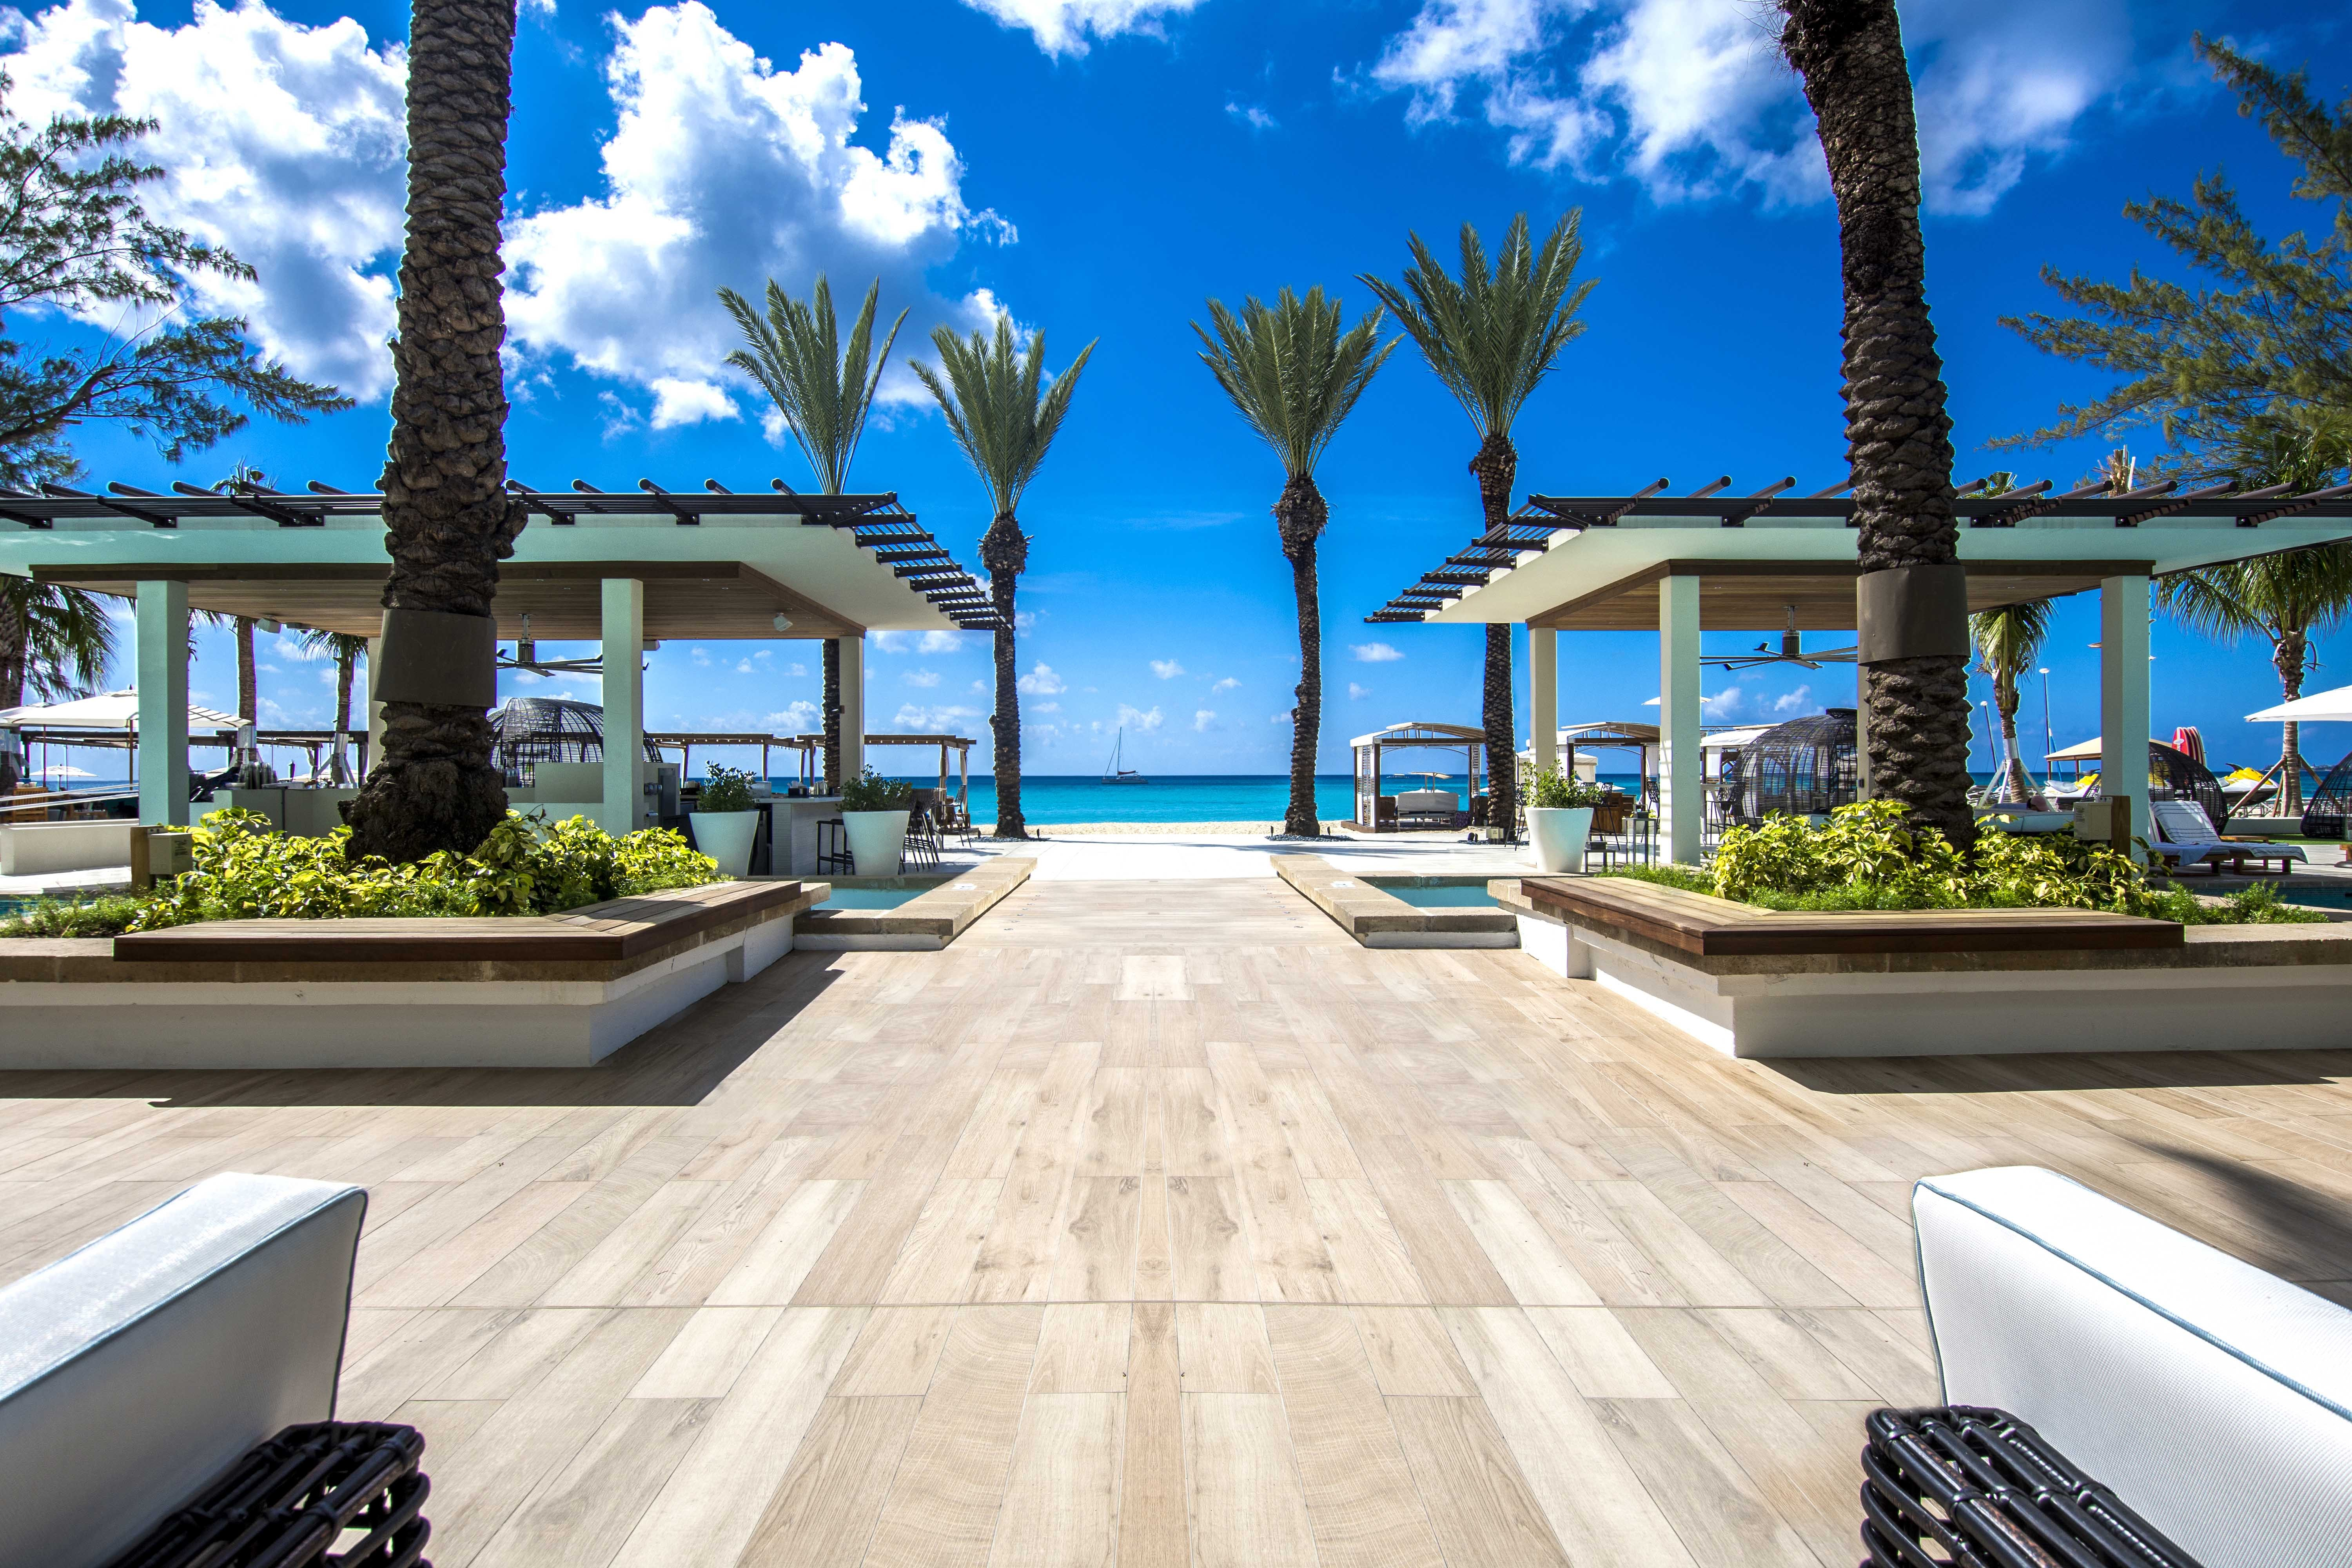 cce7d1c240271 The Westin Grand Cayman Seven Mile Beach Resort and Spa cover image